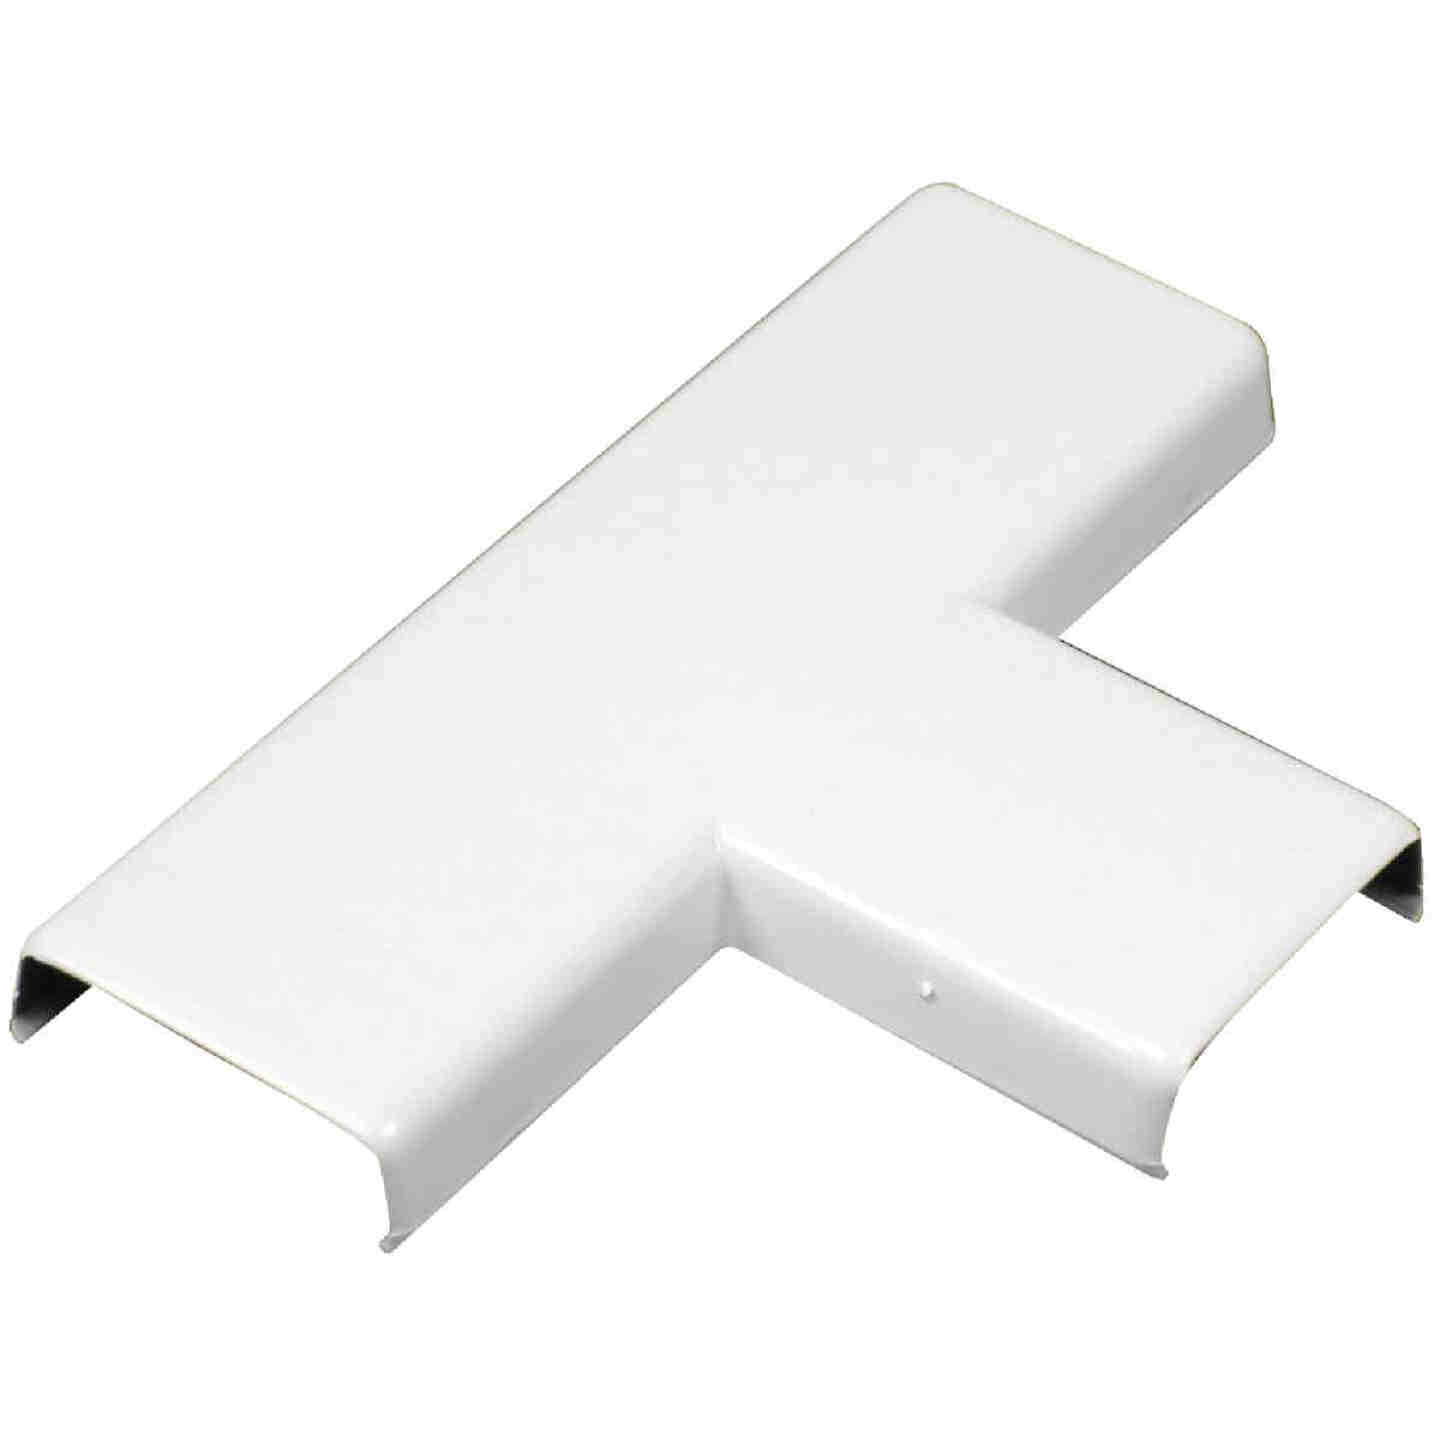 Wiremold CordMate White 1-5/16 In. W x 7/16 In. H. 90 Deg T-Fitting Image 1